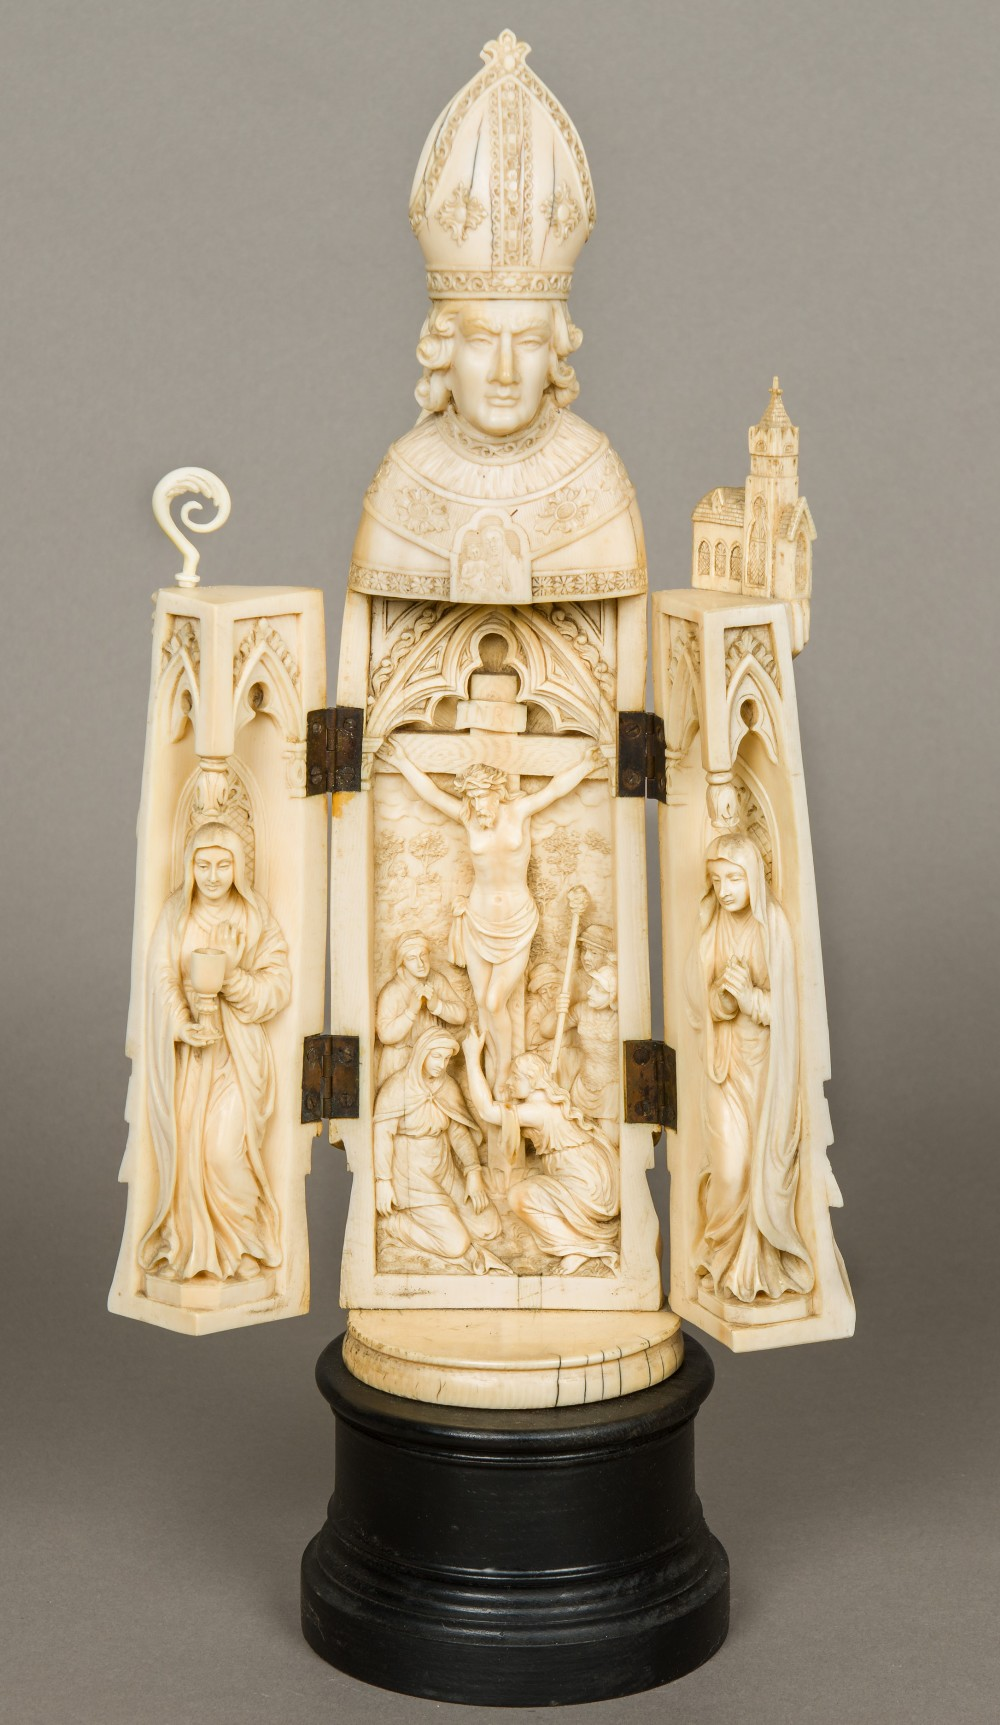 Lot 36 - A large early 19th century Dieppe carved ivory triptych Formed as a bishop enclosing a scene of